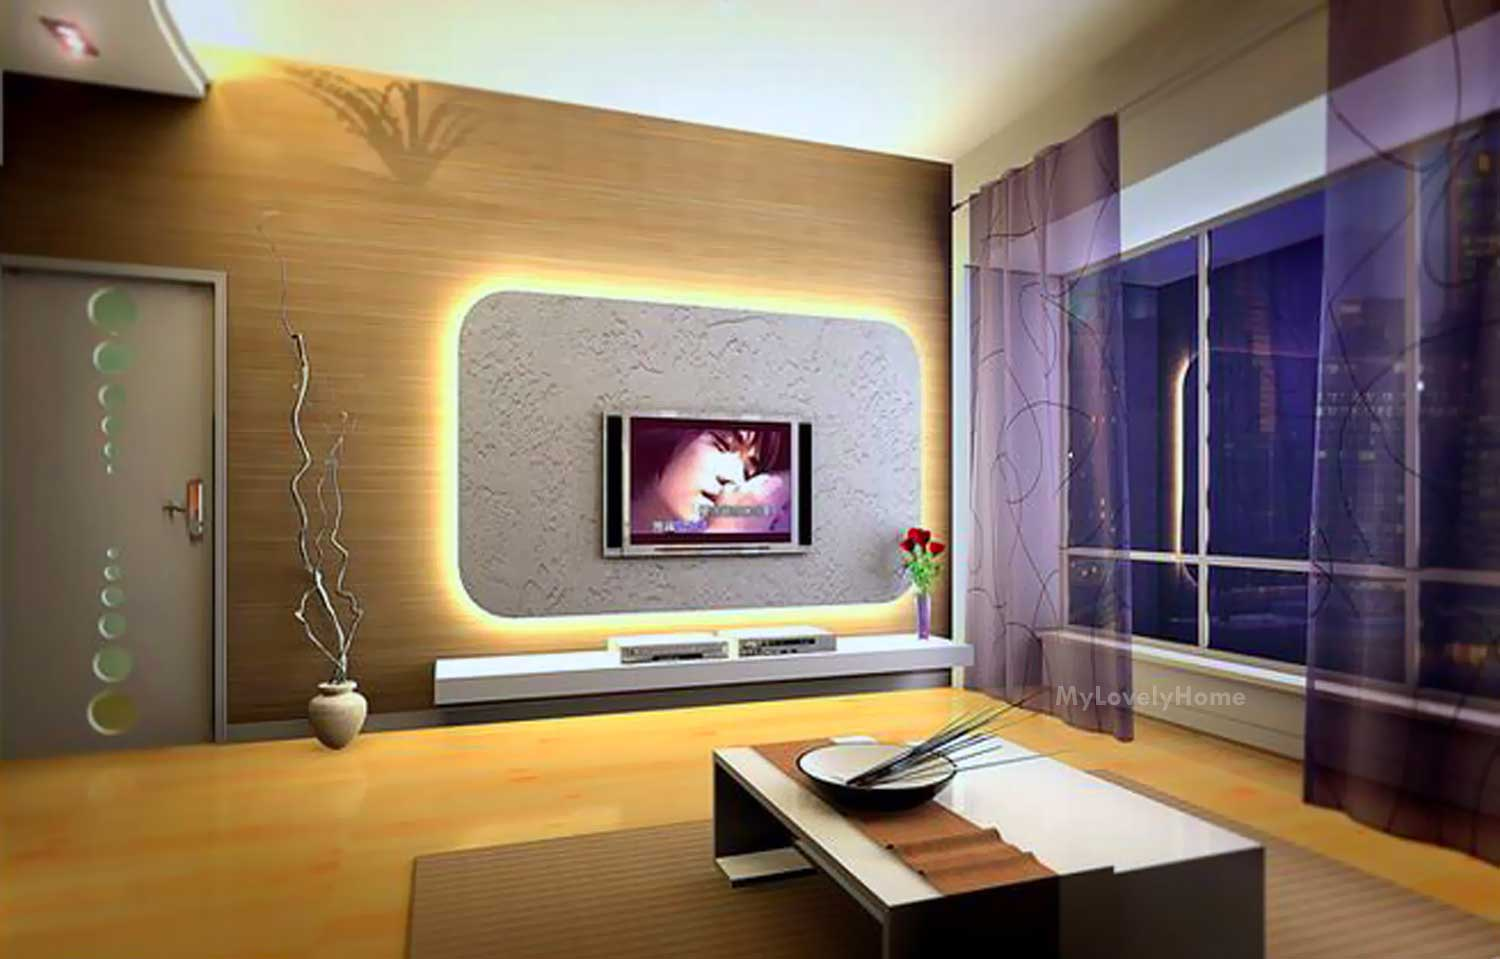 Japanese Interior Design Concept Ideas - My Lovely Home